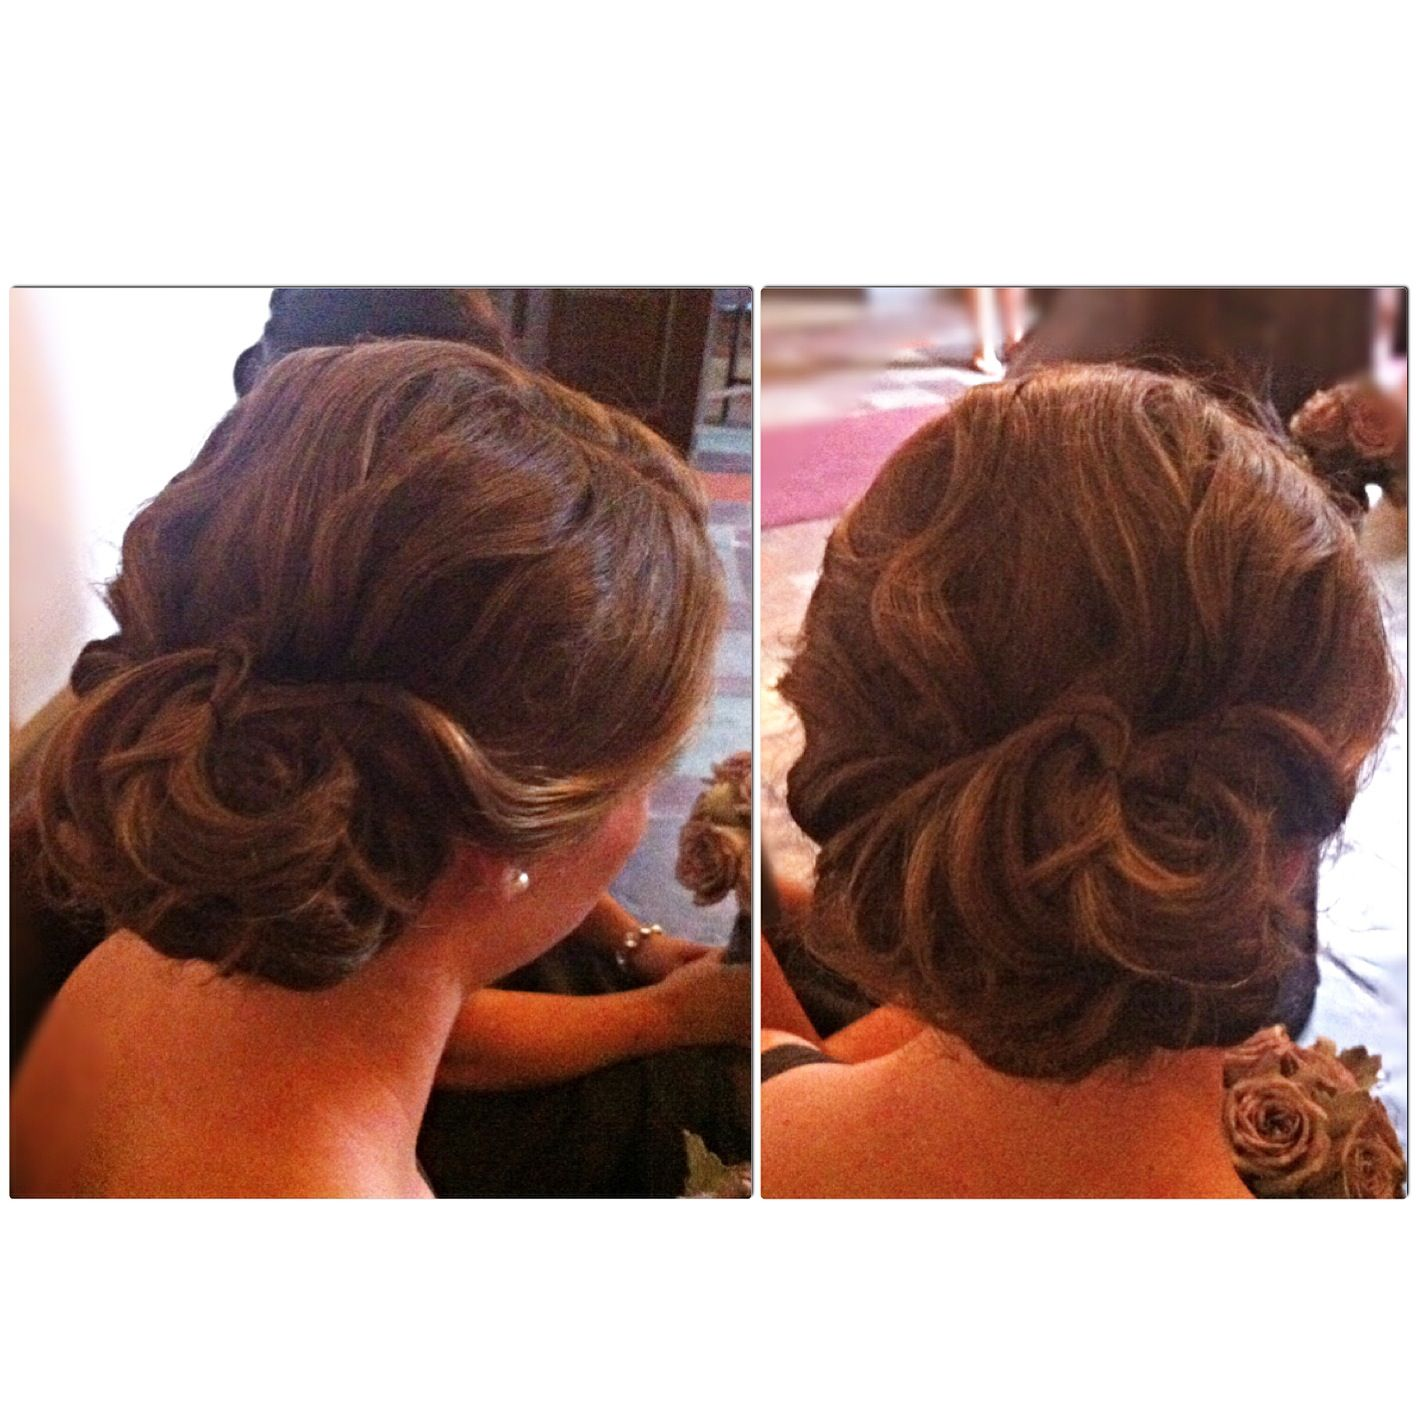 Romantic Updo Inspired By Roses I Love Being Able To Create Soft